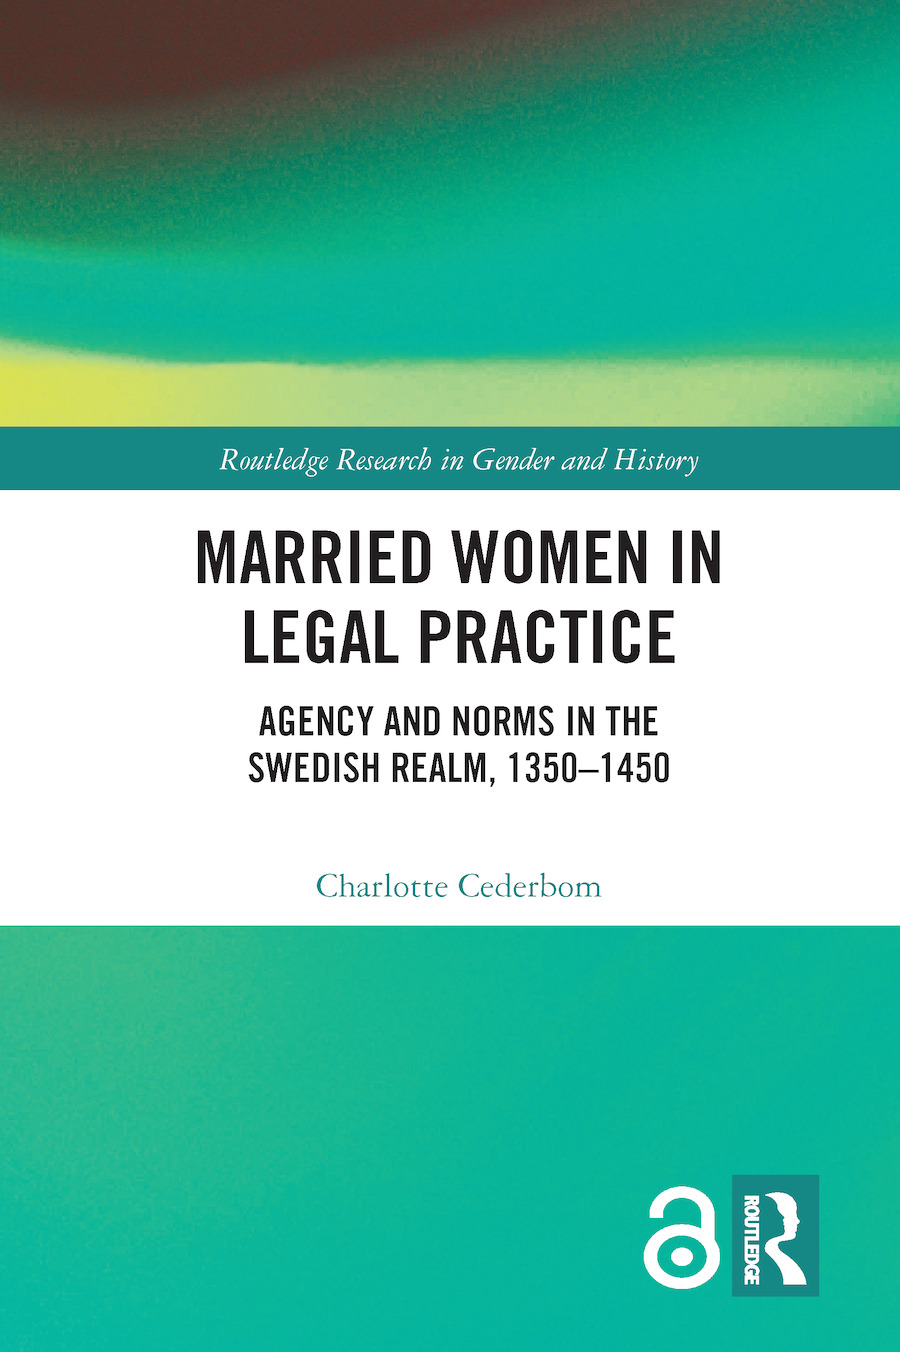 Married Women in Legal Practice: Agency and Norms in the Swedish Realm, 1350-1450 book cover